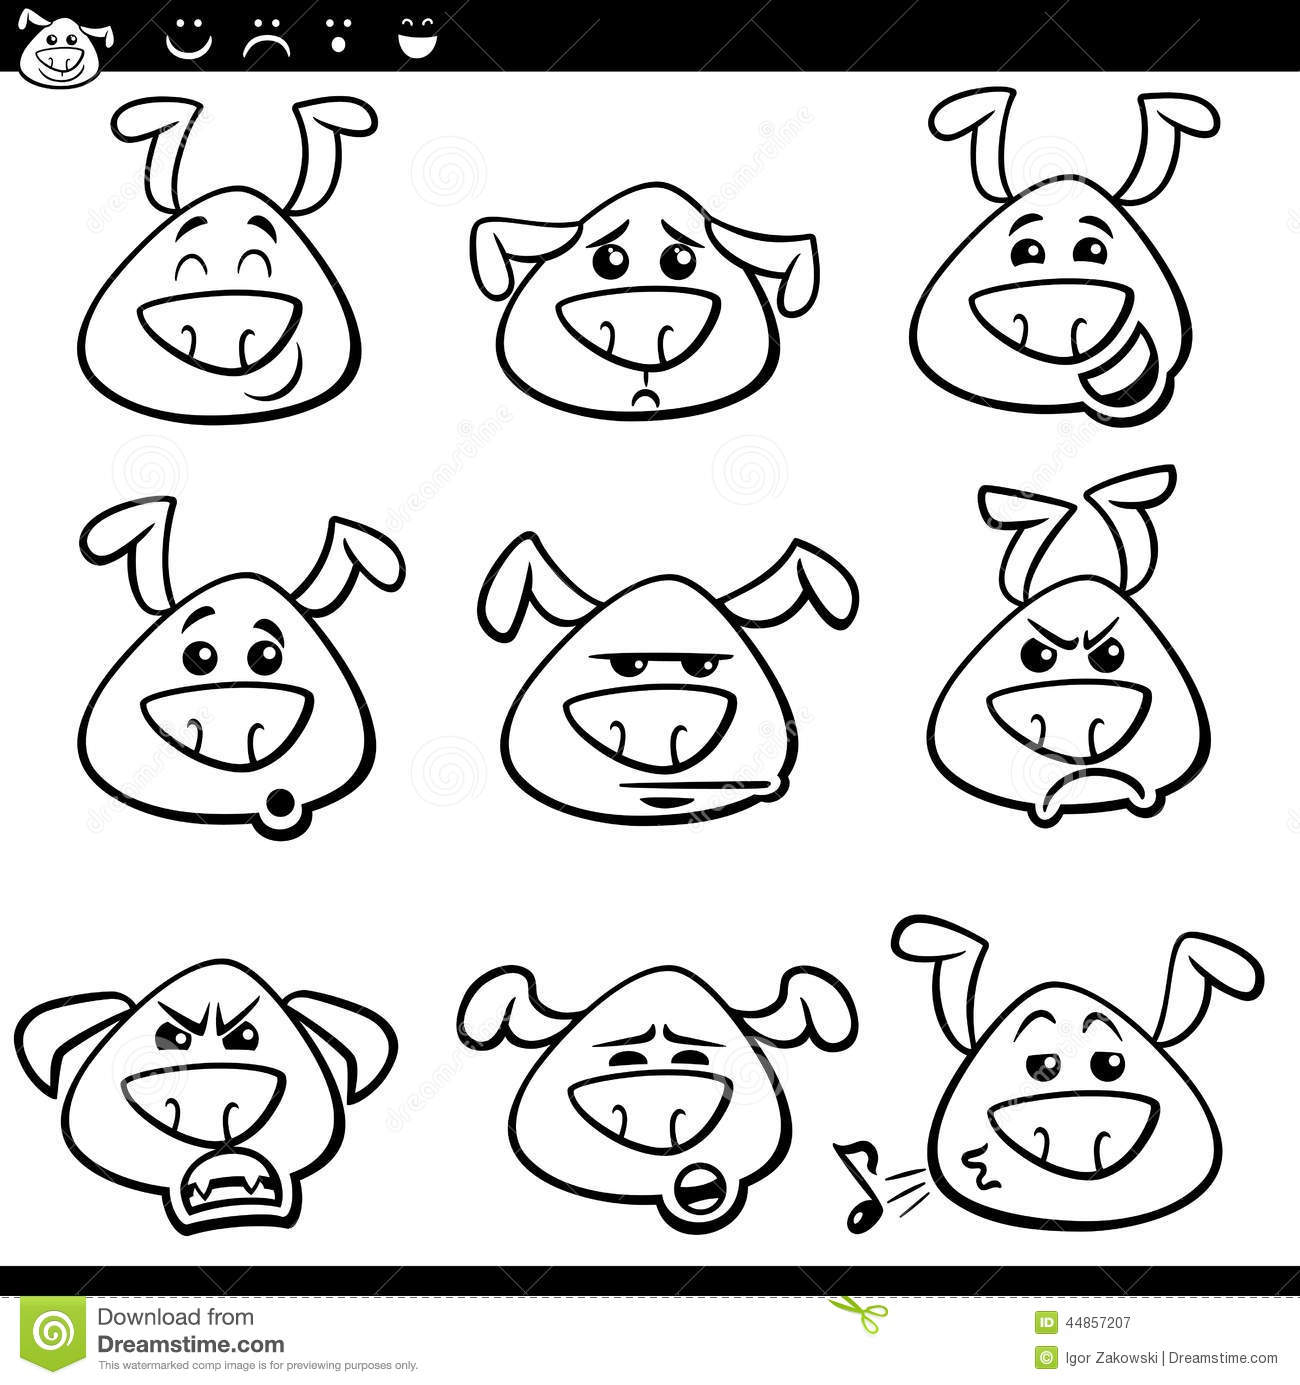 Dog Emoticons Cartoon Coloring Page Stock Vector